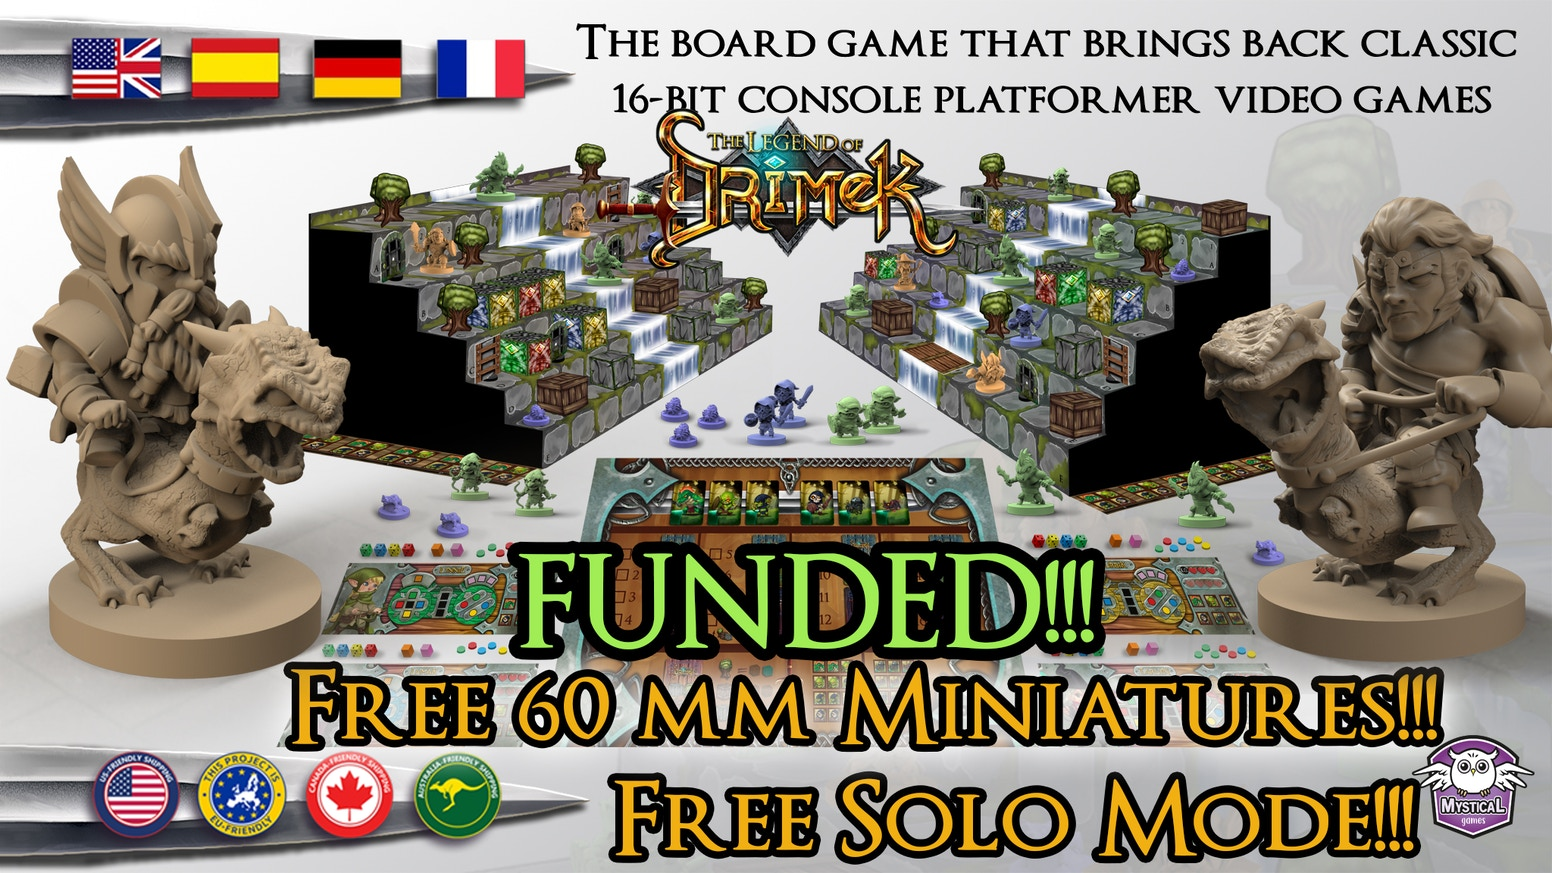 The board game that brings back classic 16-bit console platformer video games.